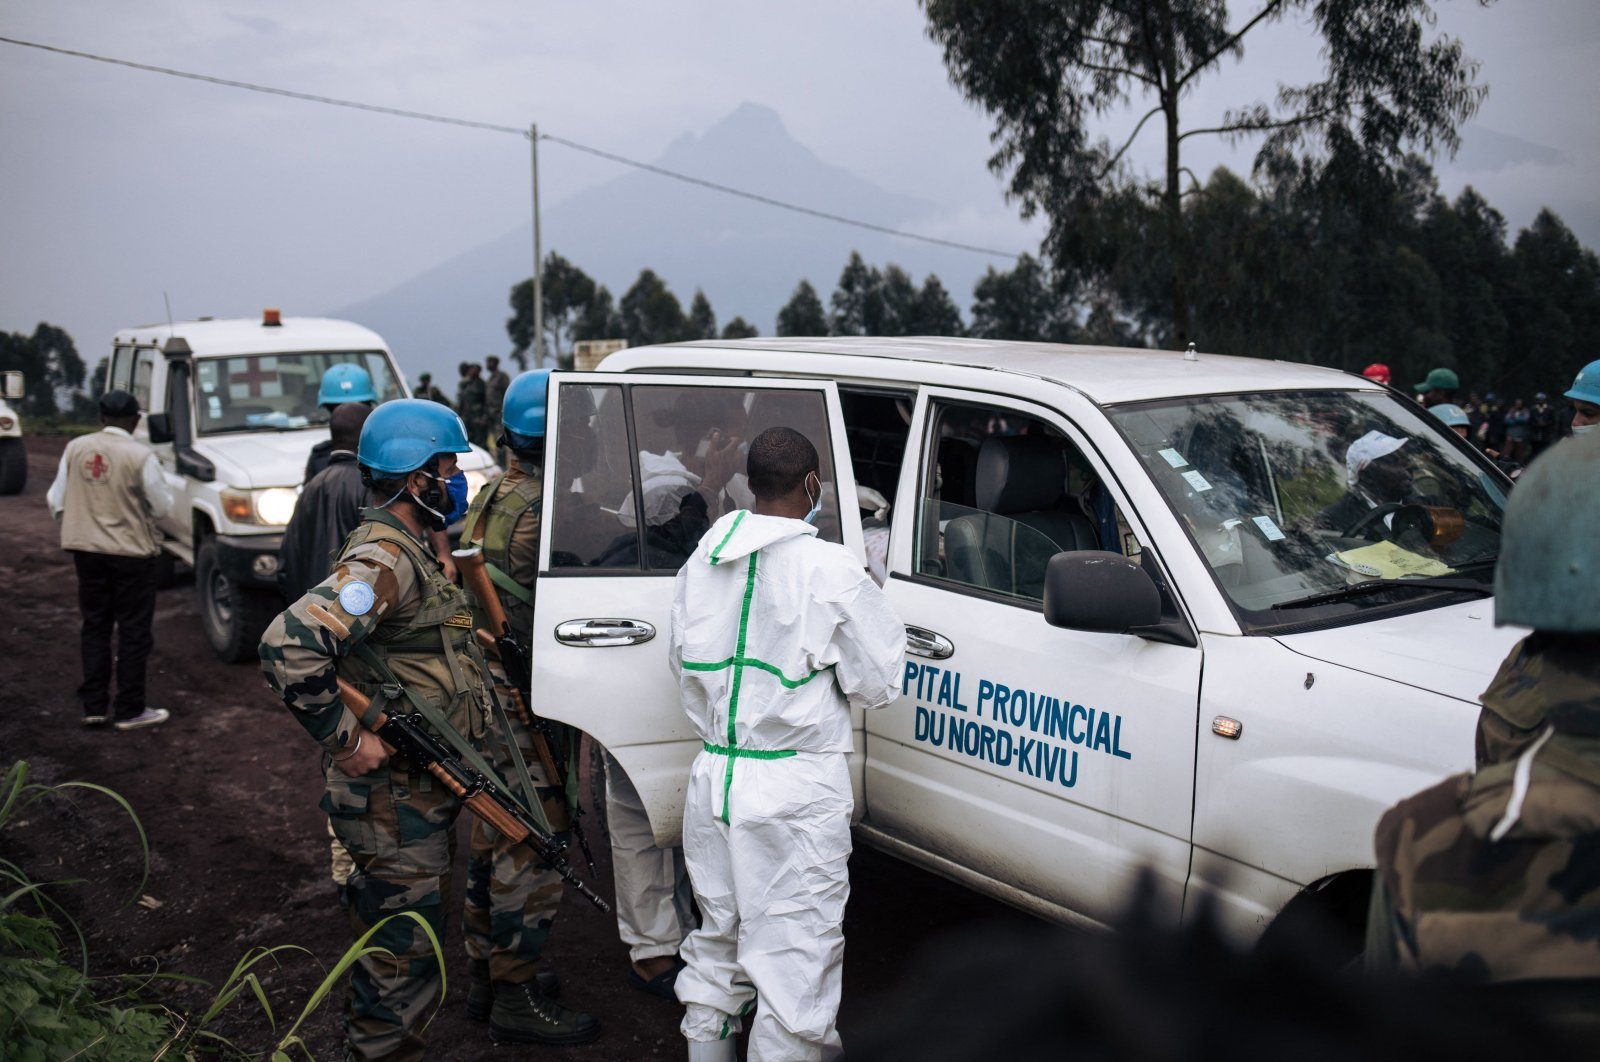 The body of a driver, who was killed in an attack, is loaded on to a medical vehicle on a road on the edge of the Virunga National Park near the village of Kibumba, some 25 kilometers from Goma, Democratic Republic of the Congo, Feb. 22, 2021.